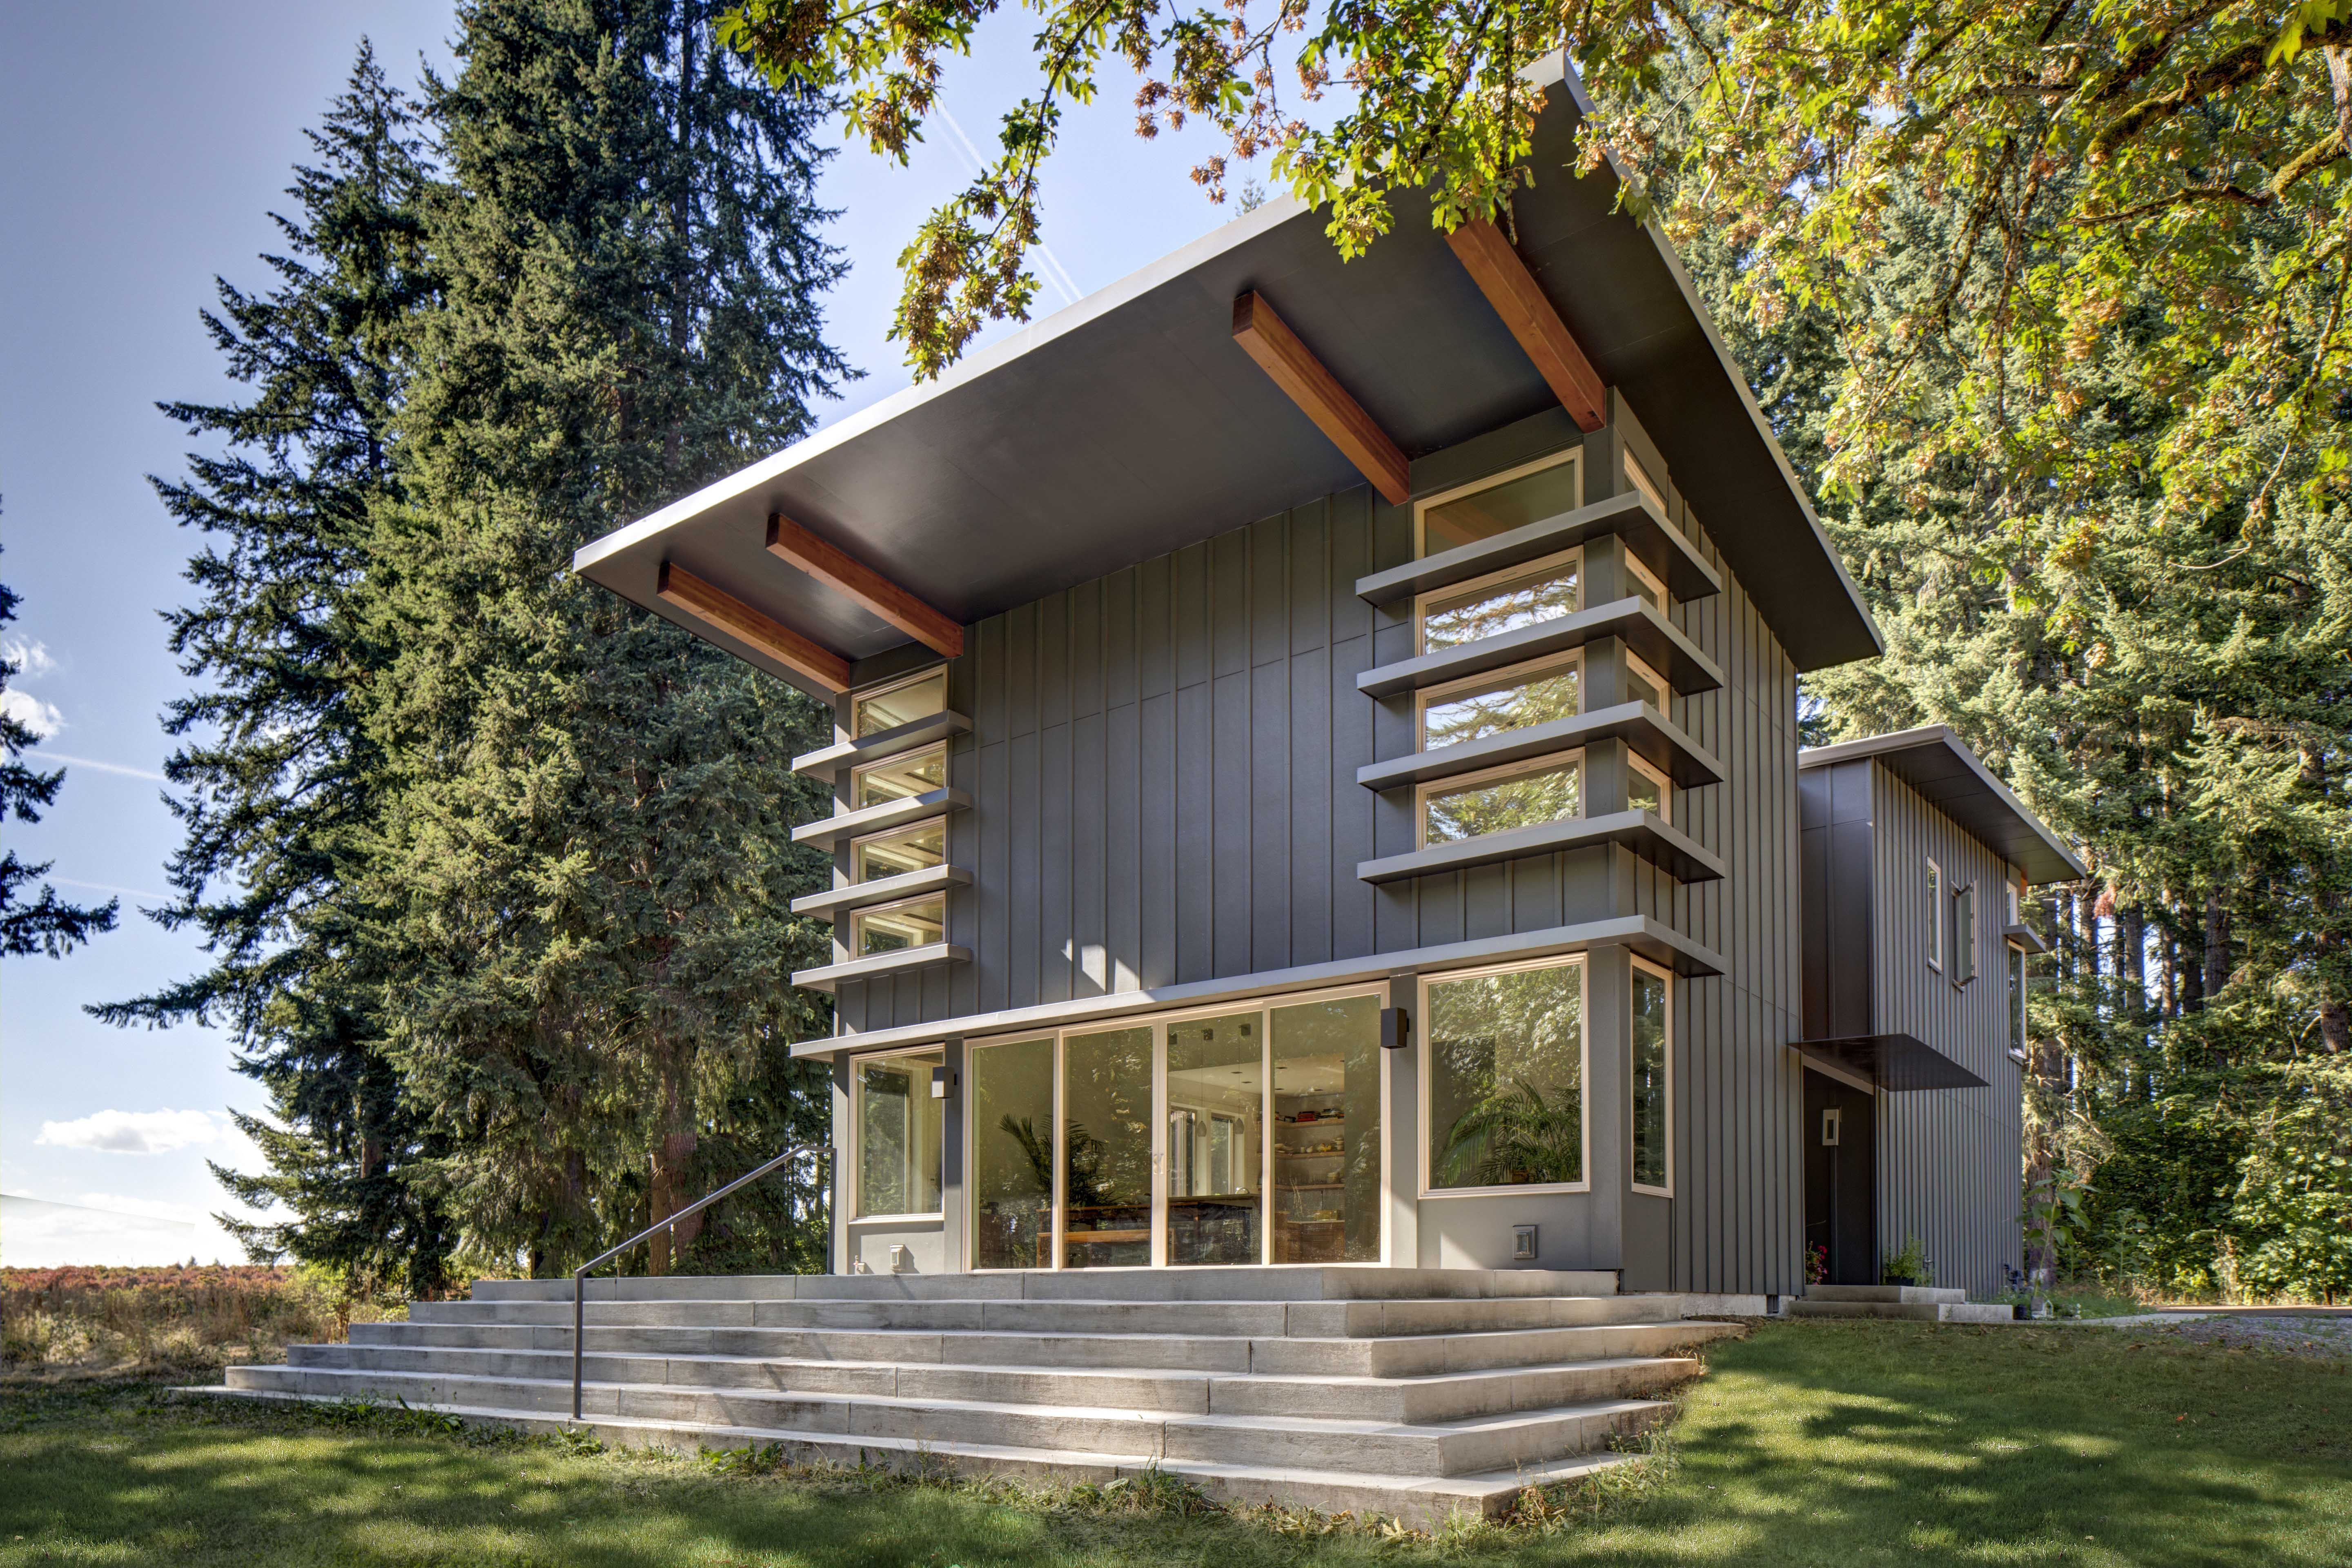 Modern Architecture Portland stillwater dwellings home recently completed in sandy, oregon a